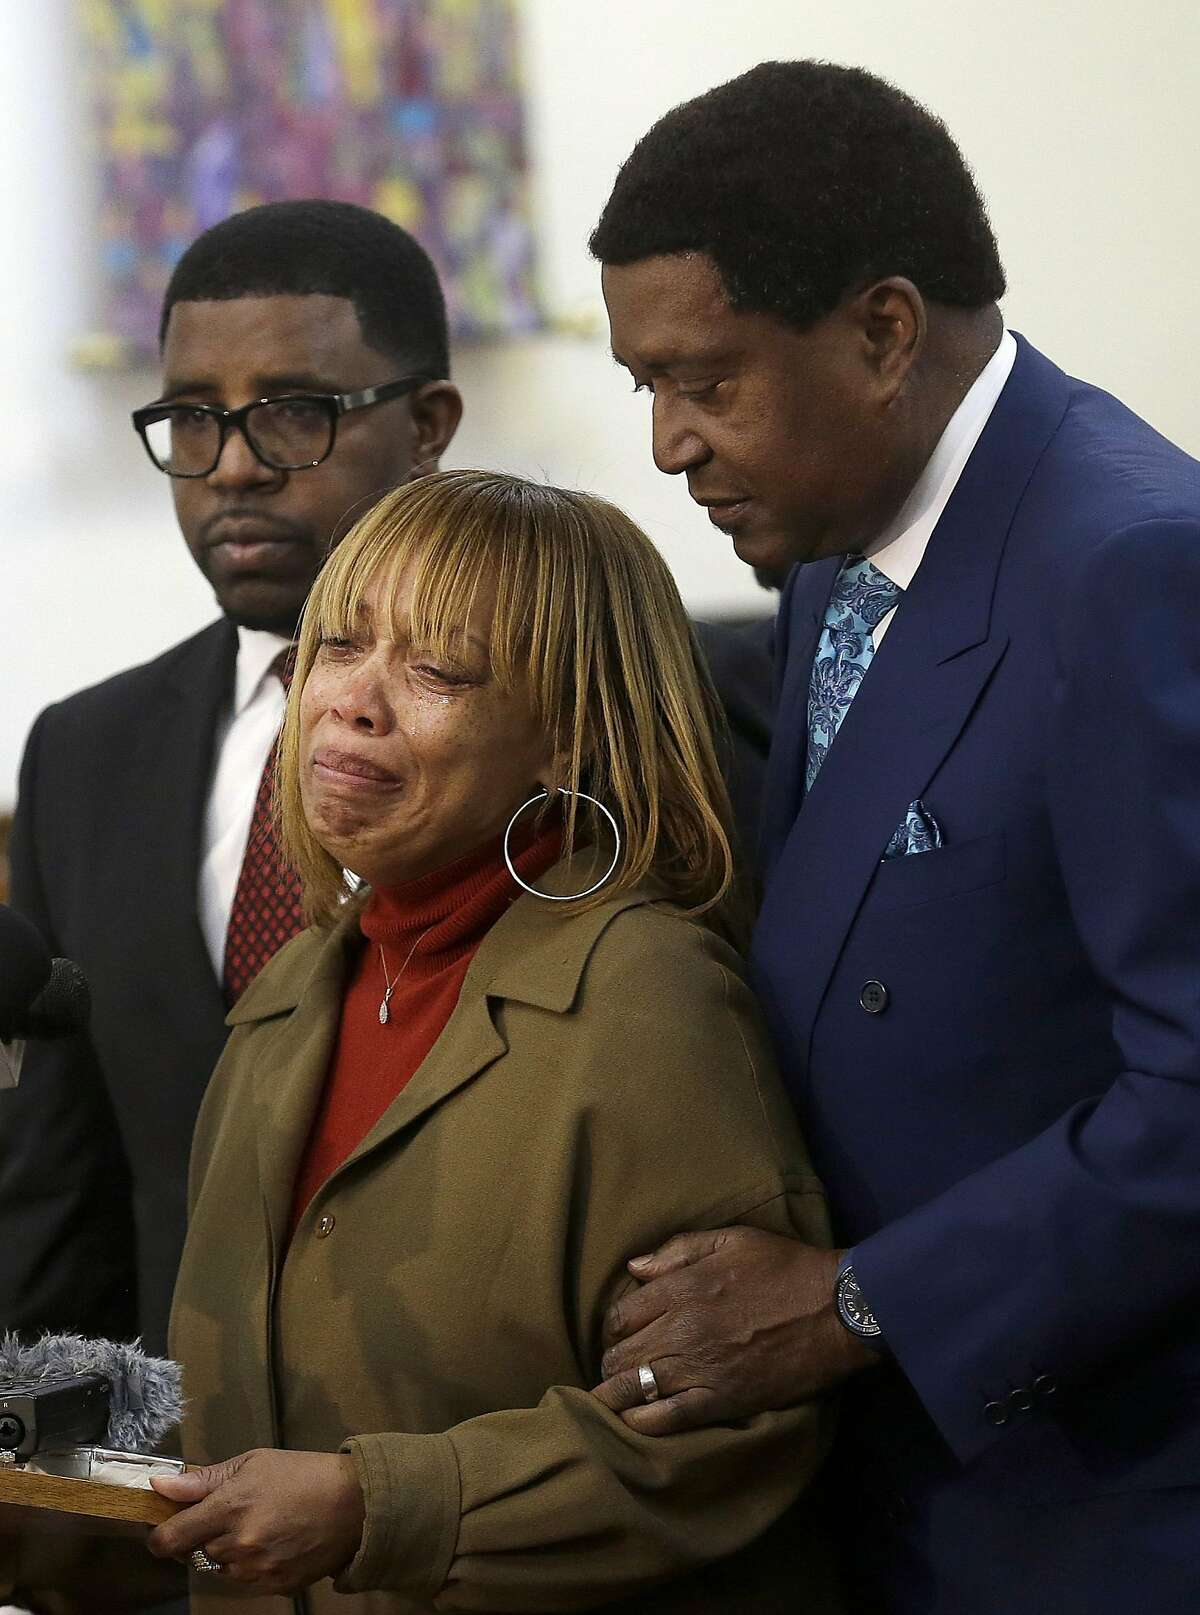 Attorney John Burris, right, comforts Gwendolyn Woods, the mother of Mario Woods, the man killed by San Francisco police after they say he appeared to raise an 8-inch knife and approach an officer, as she speaks at a news conference in San Francisco, Monday, Jan. 18, 2016. The family has asked the U.S. Department of Justice to investigate the officers who shot Woods on Dec. 2, 2015, and review the department's use of deadly force, stops, and detention and searches of African American and Latino citizens for possible civil rights violations. (AP Photo/Jeff Chiu)